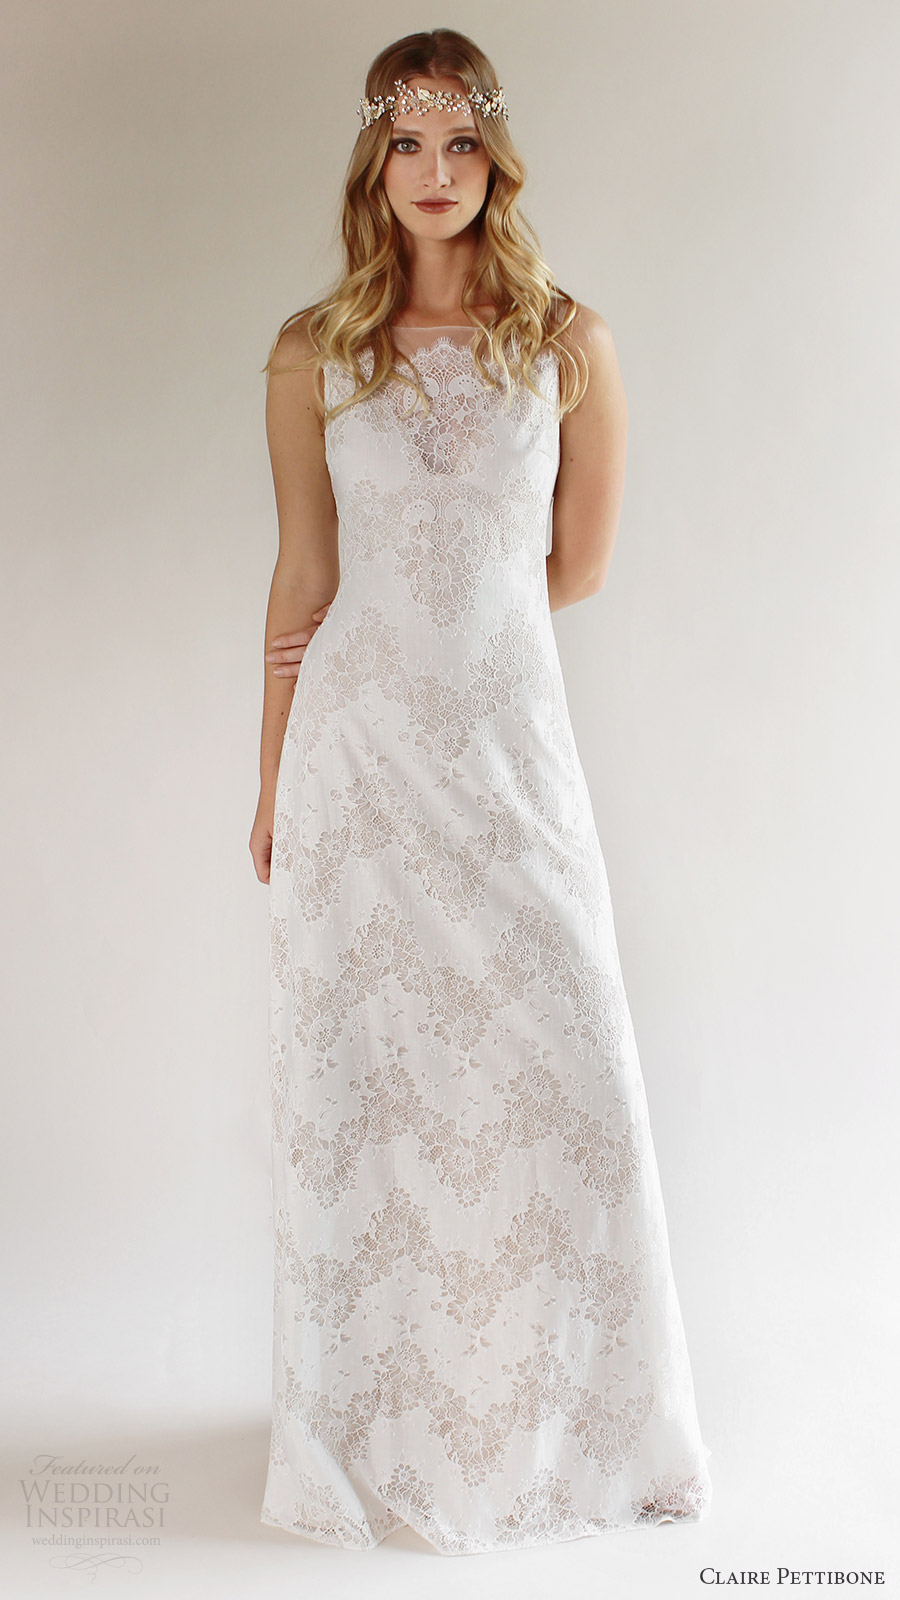 Romantique by claire pettibone spring 2017 wedding dresses for Spring wedding dresses 2017